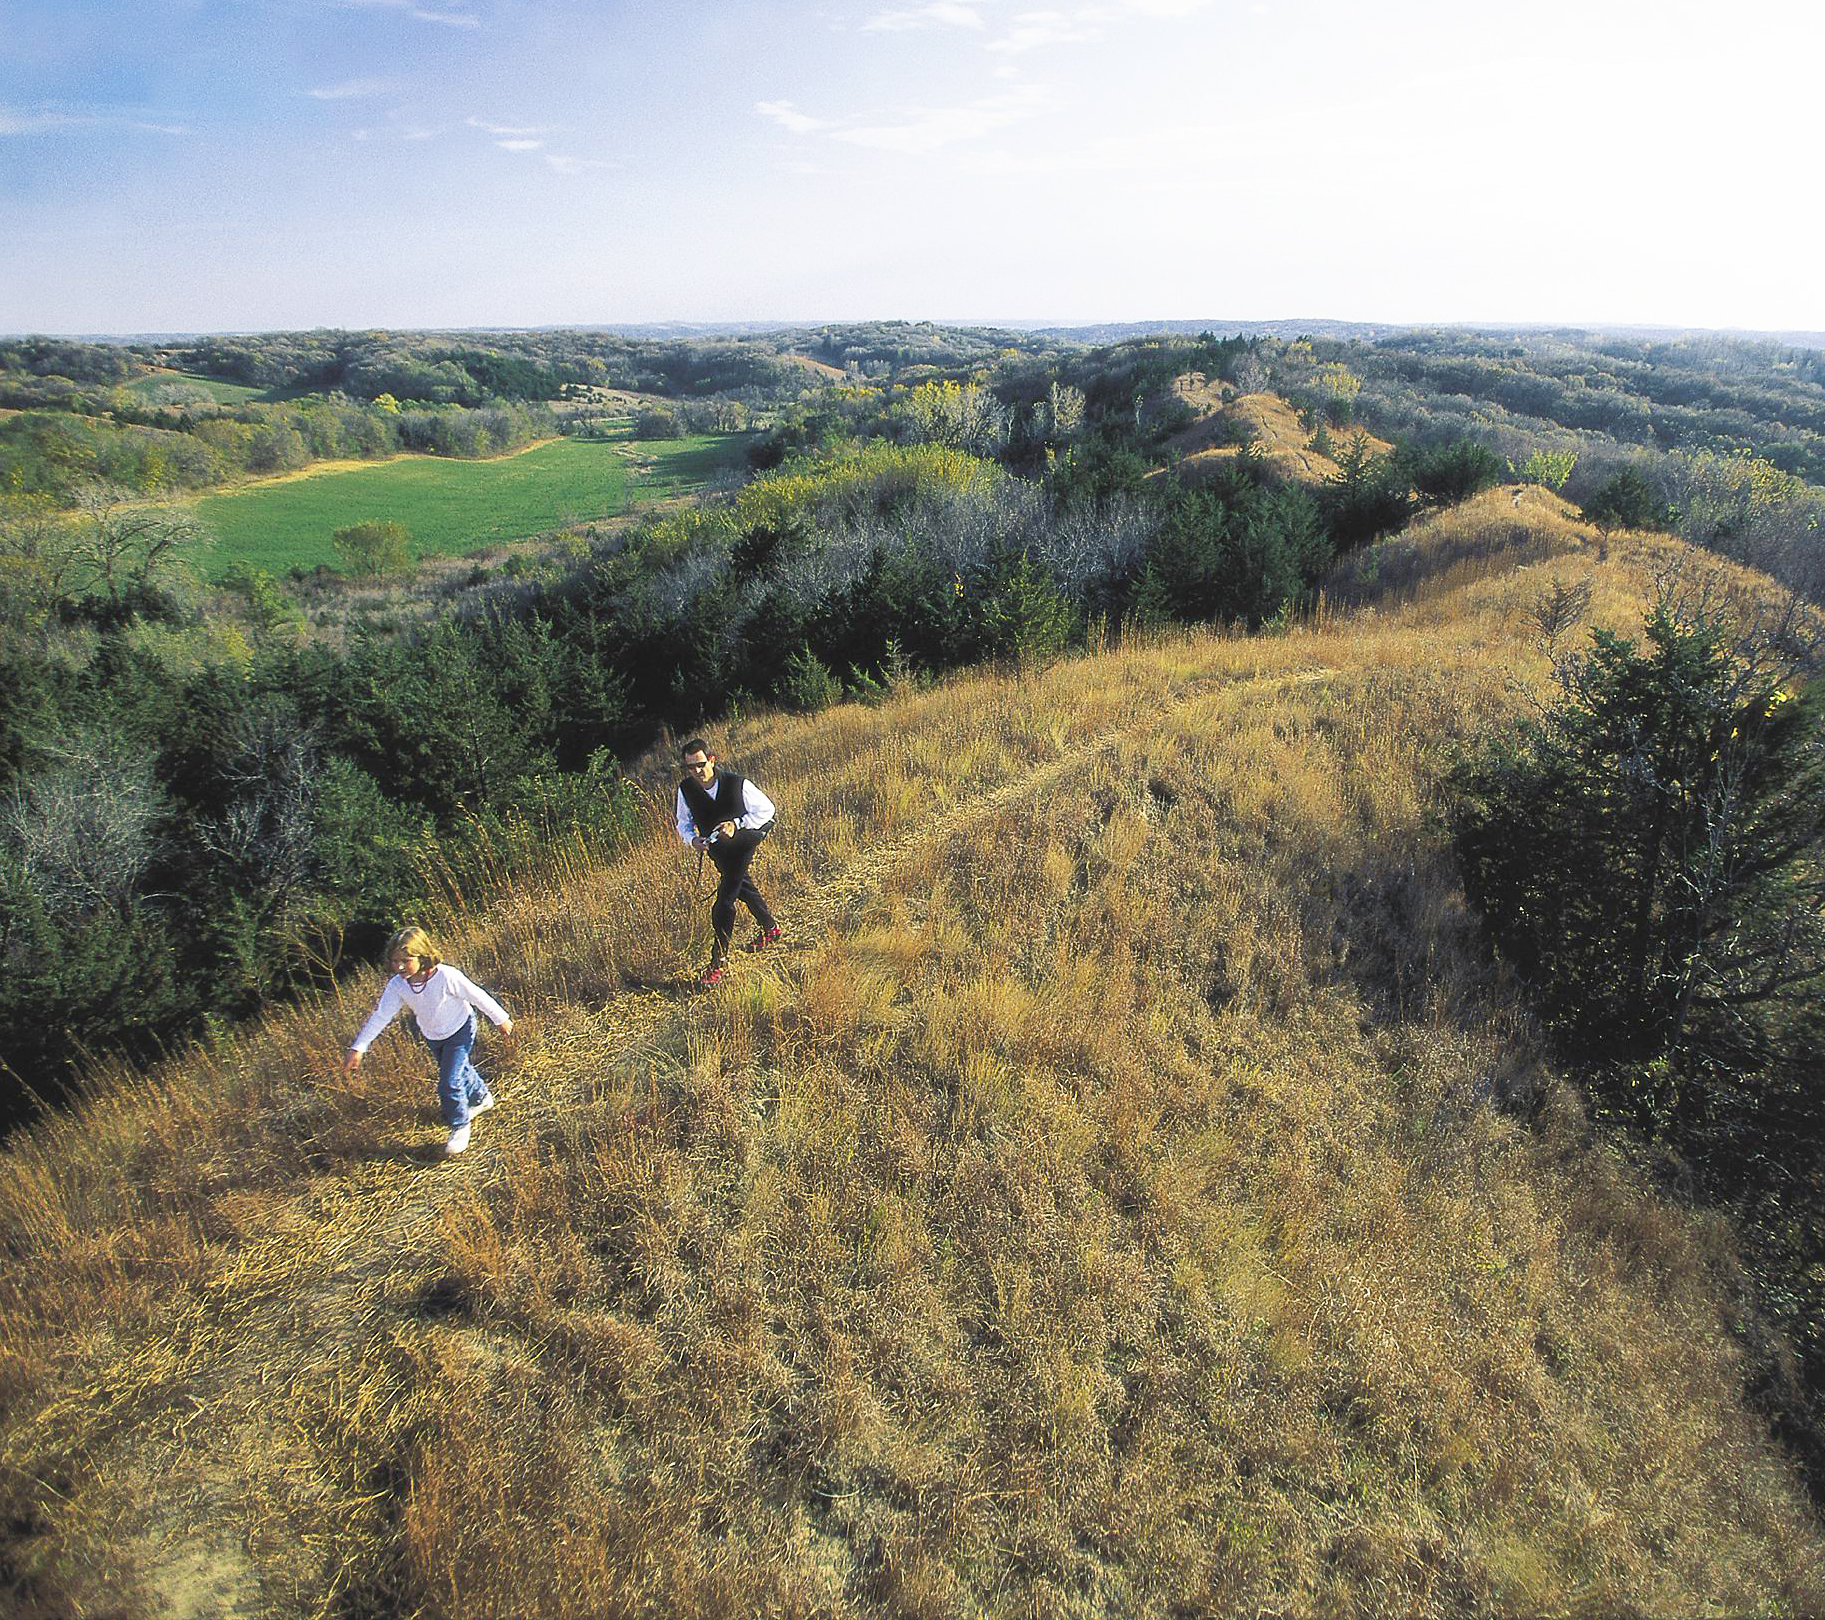 Iowa: Loess Hills National Scenic Byway